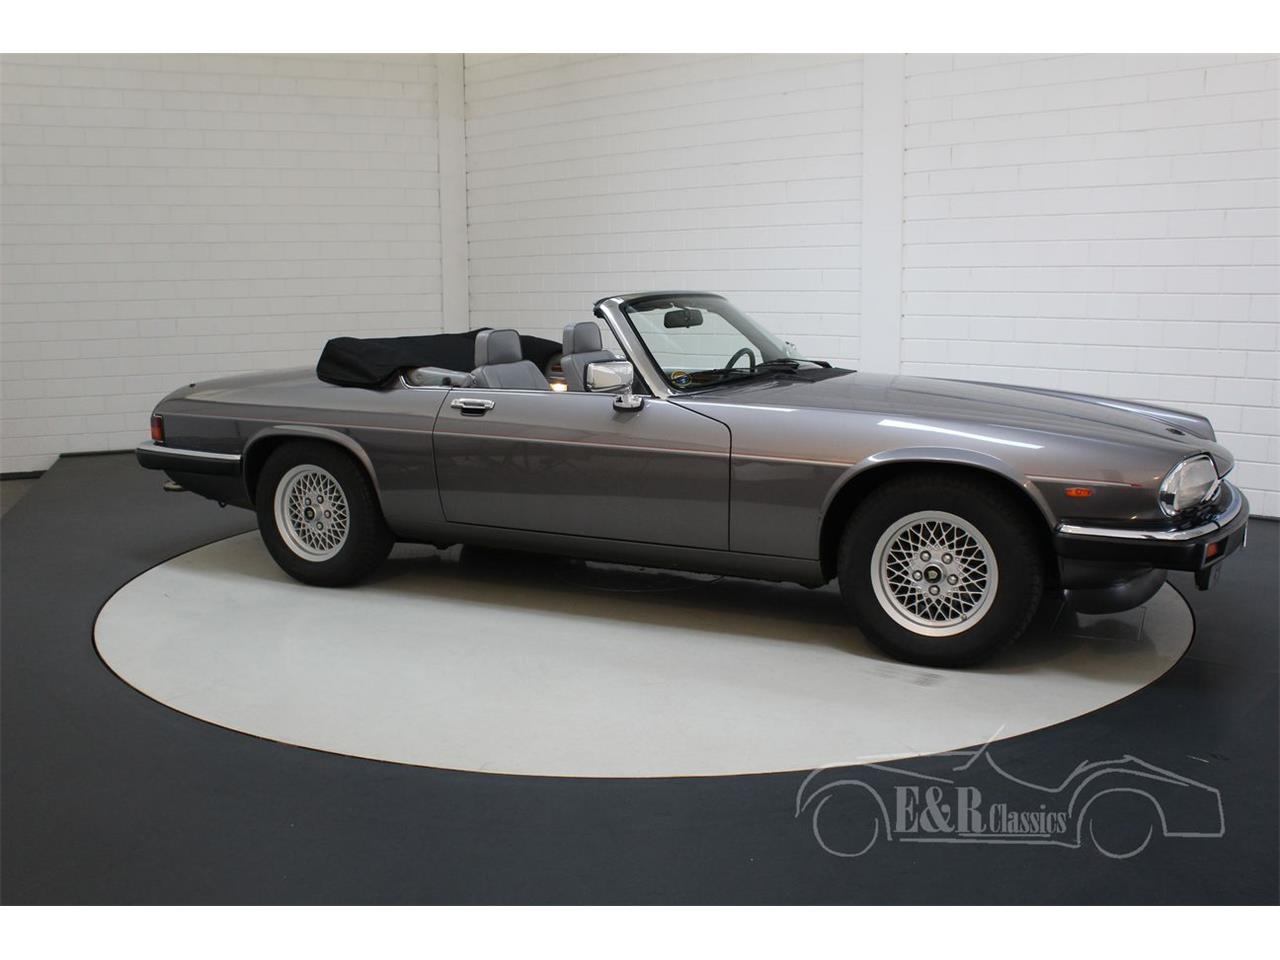 Large Picture of '91 XJS located in Waalwijk noord brabant - $39,050.00 - QQJ7